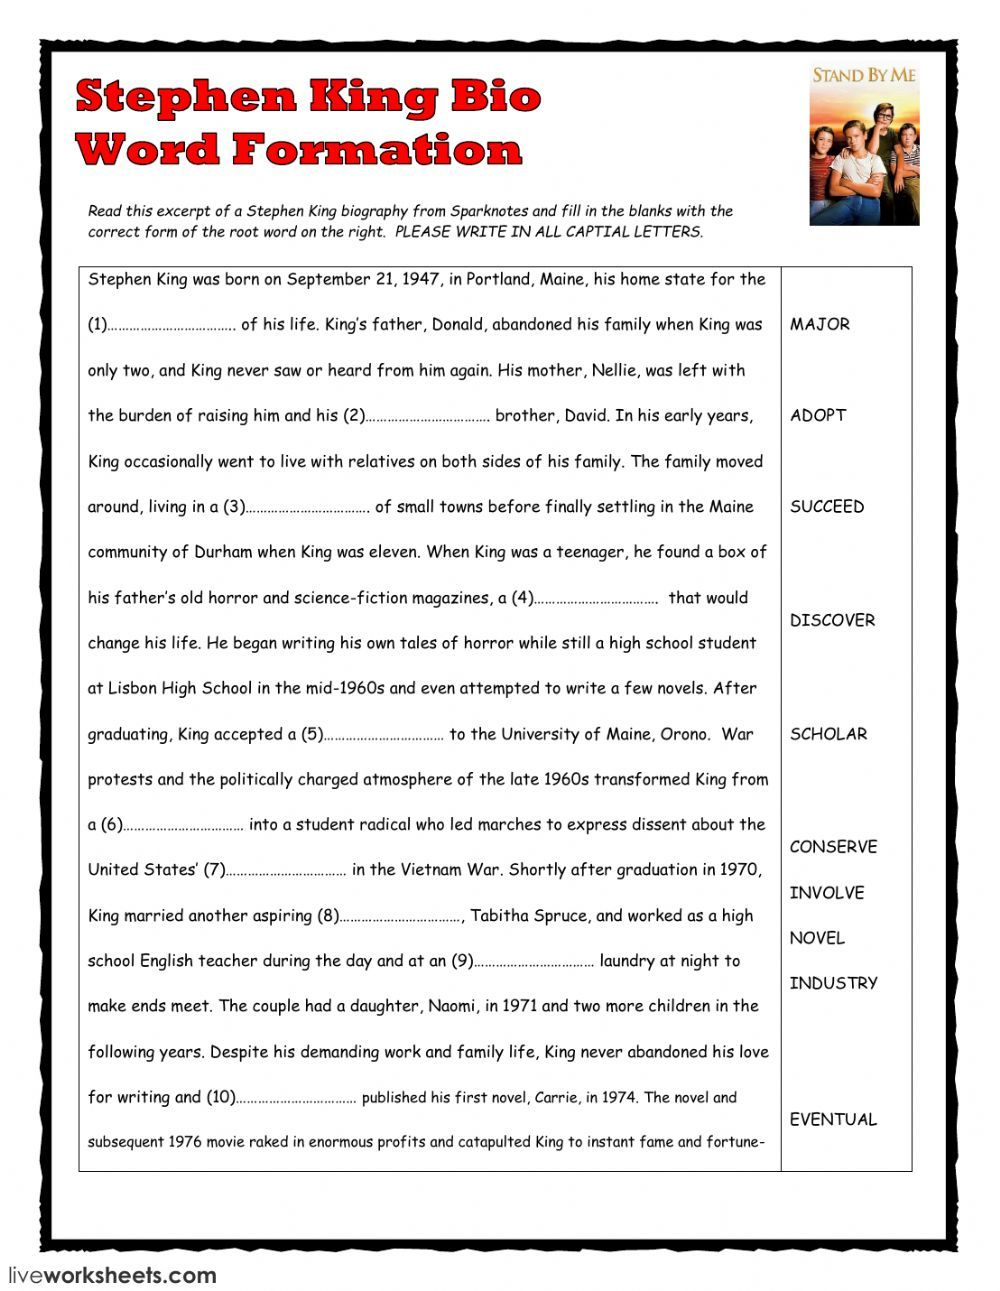 Word Formation Interactive And Downloadable Worksheet You Can Do The Exercises Online Or Download Word Formation English As A Second Language Verb Worksheets [ 1291 x 1000 Pixel ]